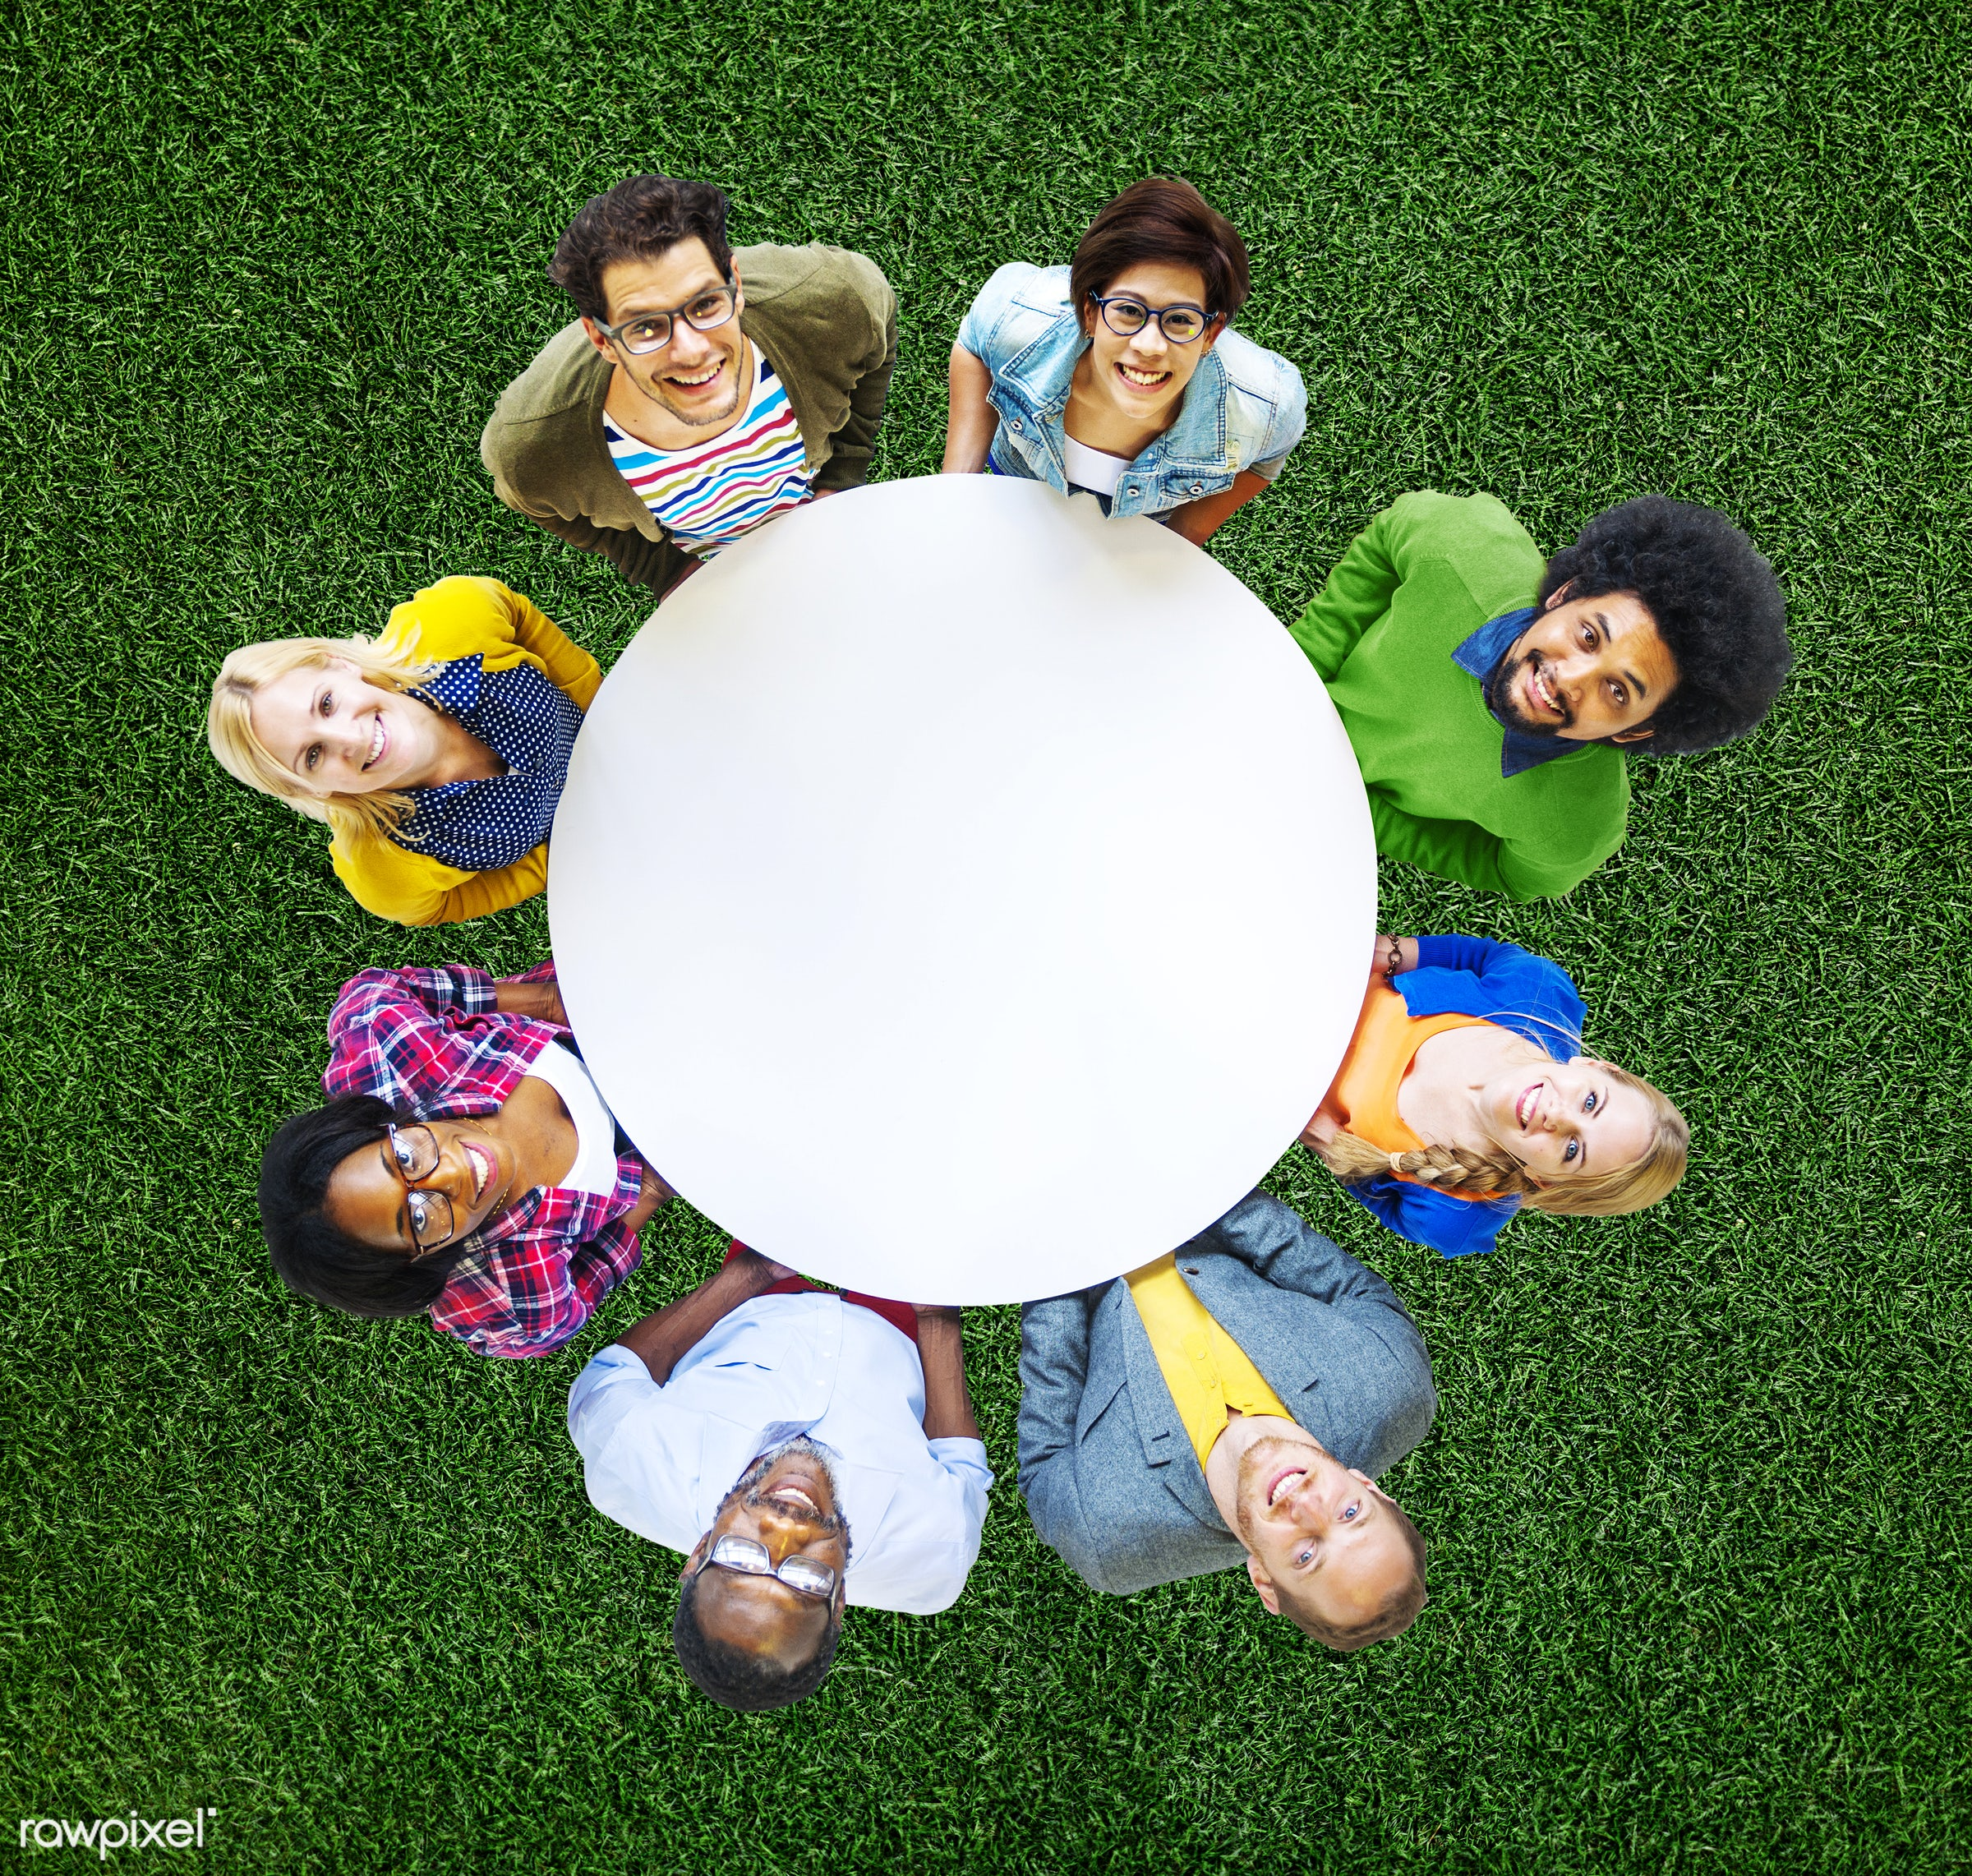 aerial view, african descent, asian ethnicity, blank, casual, cheerful, circle, colorful, communication, community,...